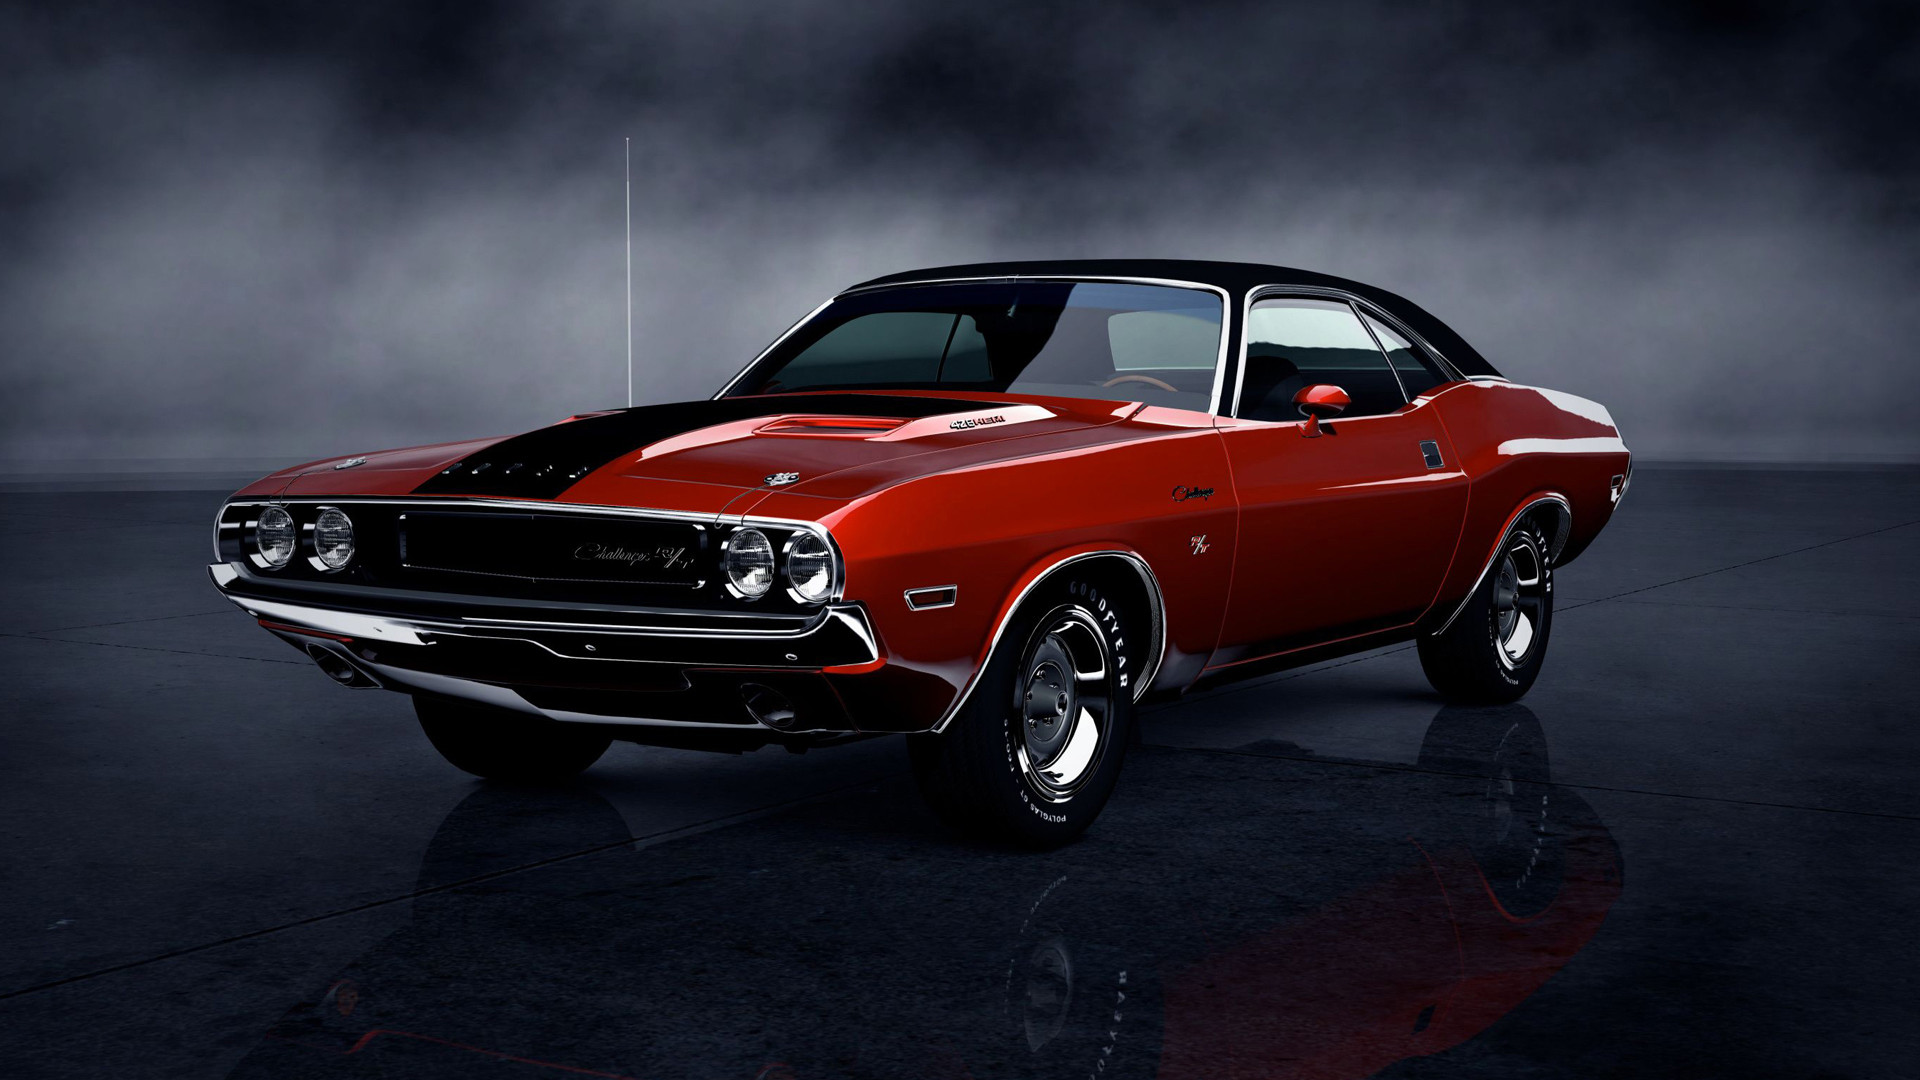 69 Dodge Charger Wallpapers – Wallpaper Cave